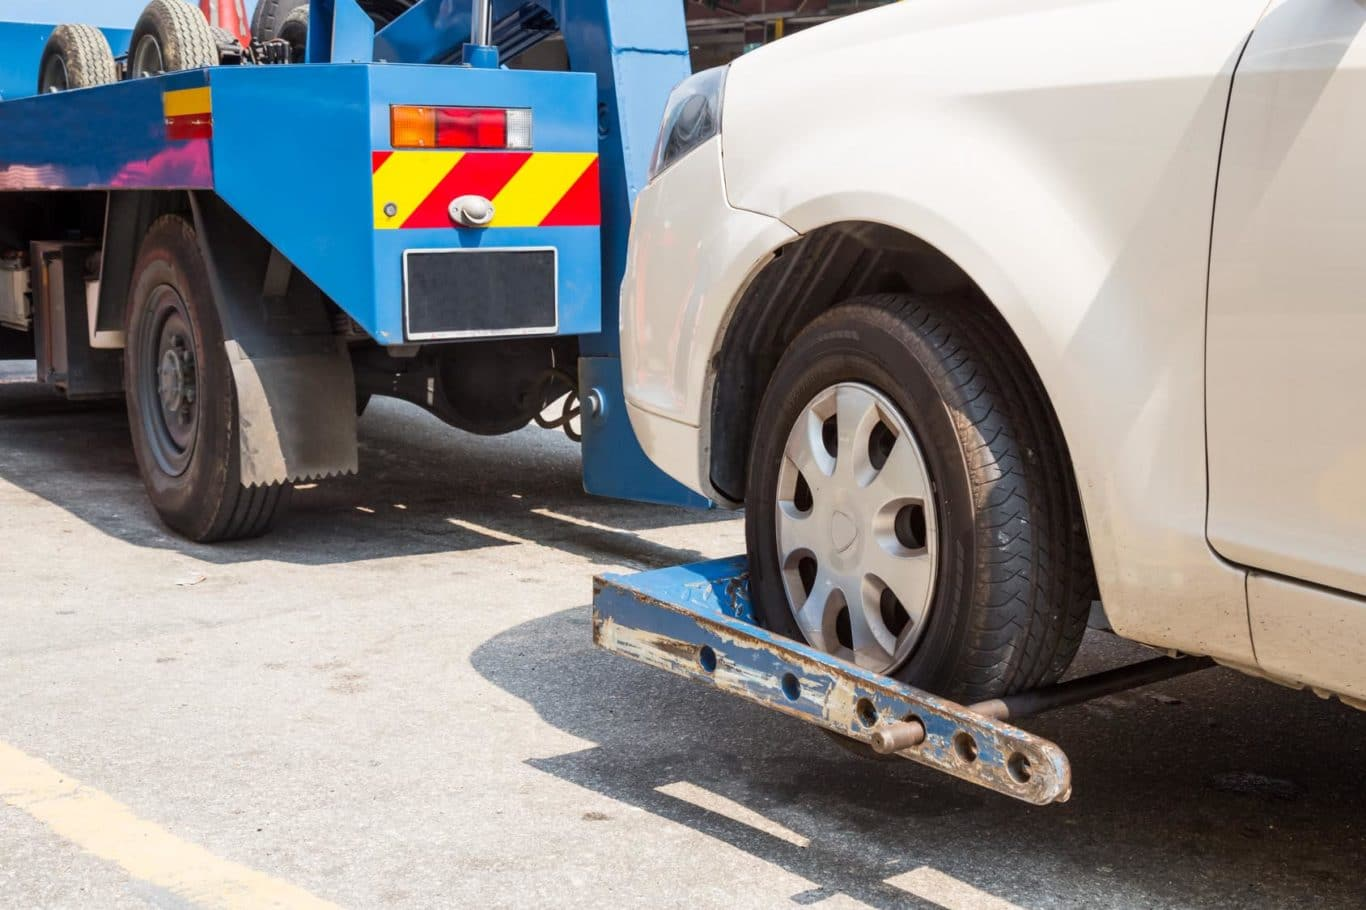 Ballyknockan expert Car Towing services